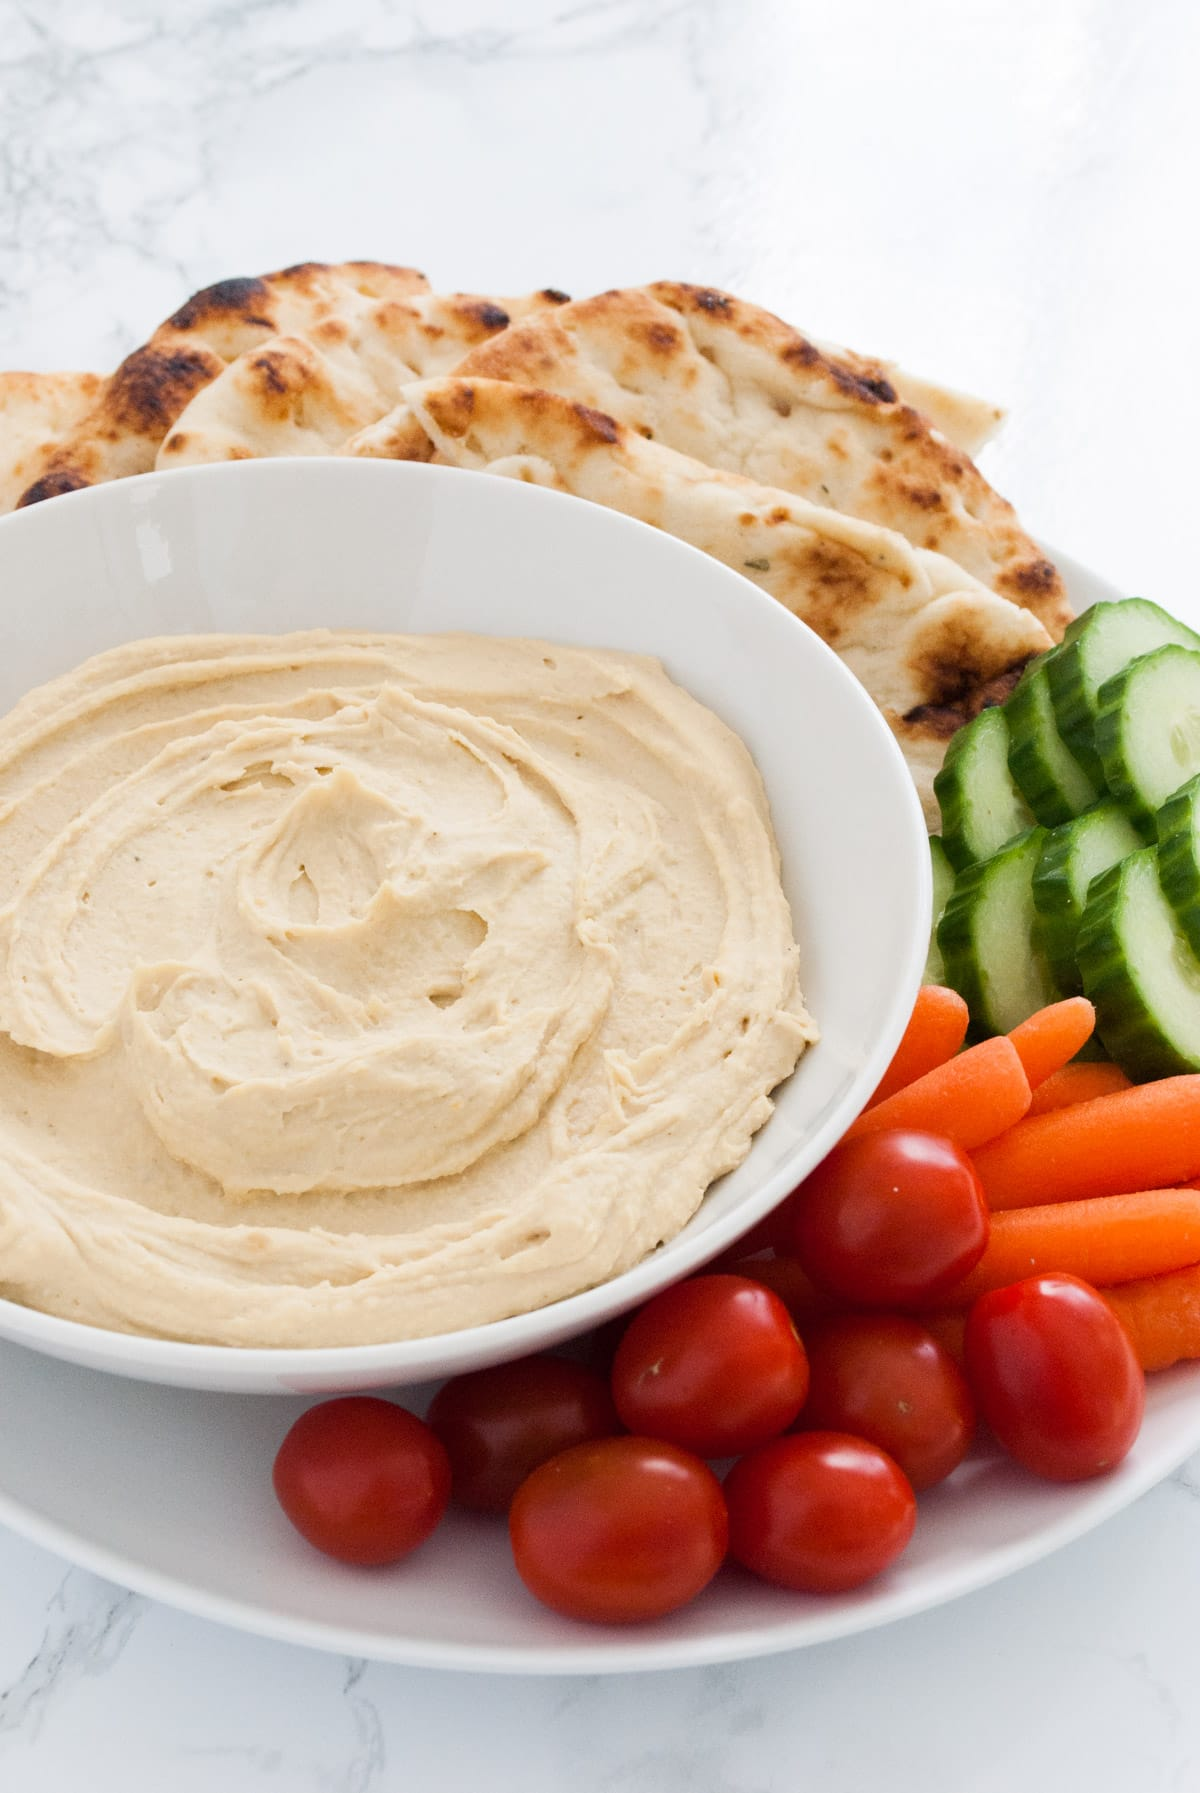 Creamy hummus in a bowl surrounded by pita bread and cut veggies.